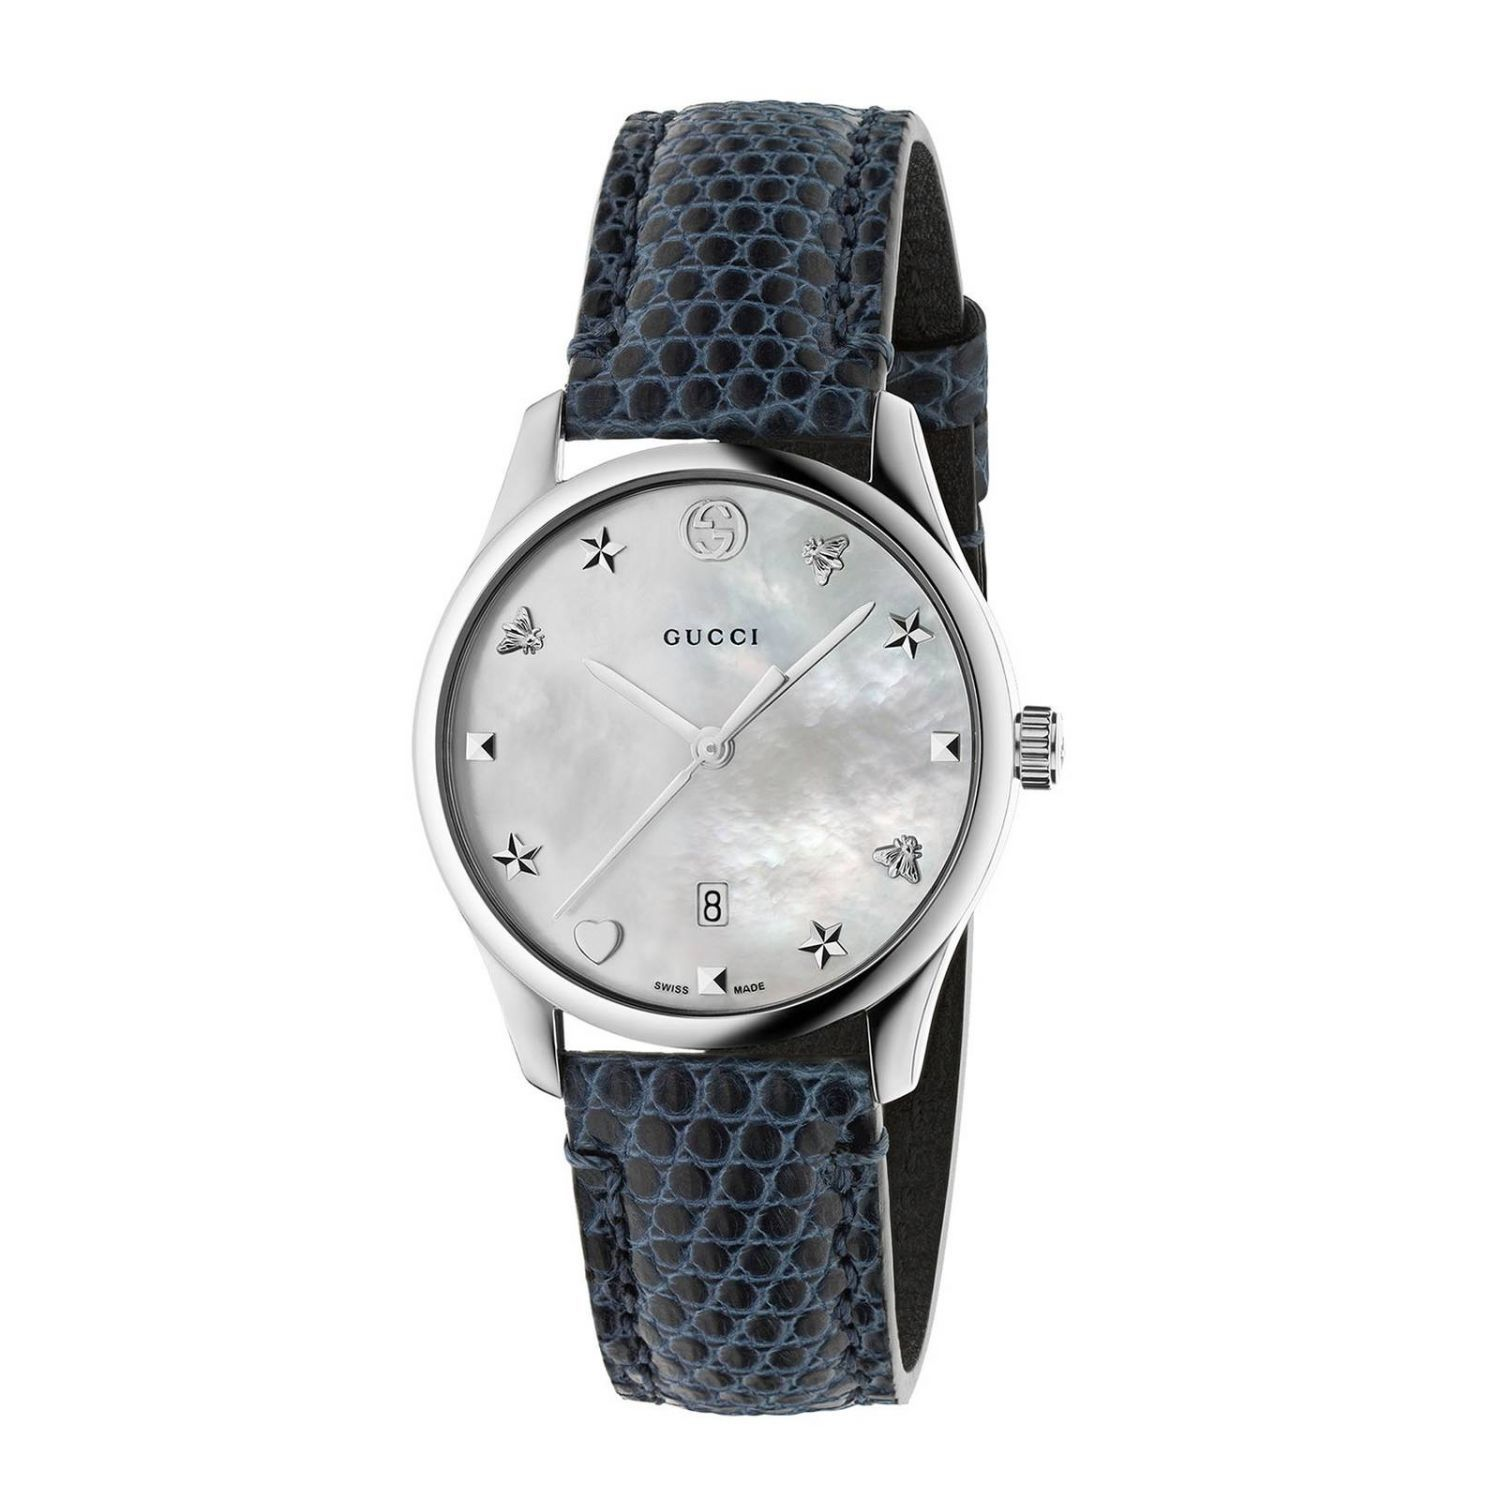 Watch G-timeless Watch Case 27 Mm With Mother-of-pearl Dial